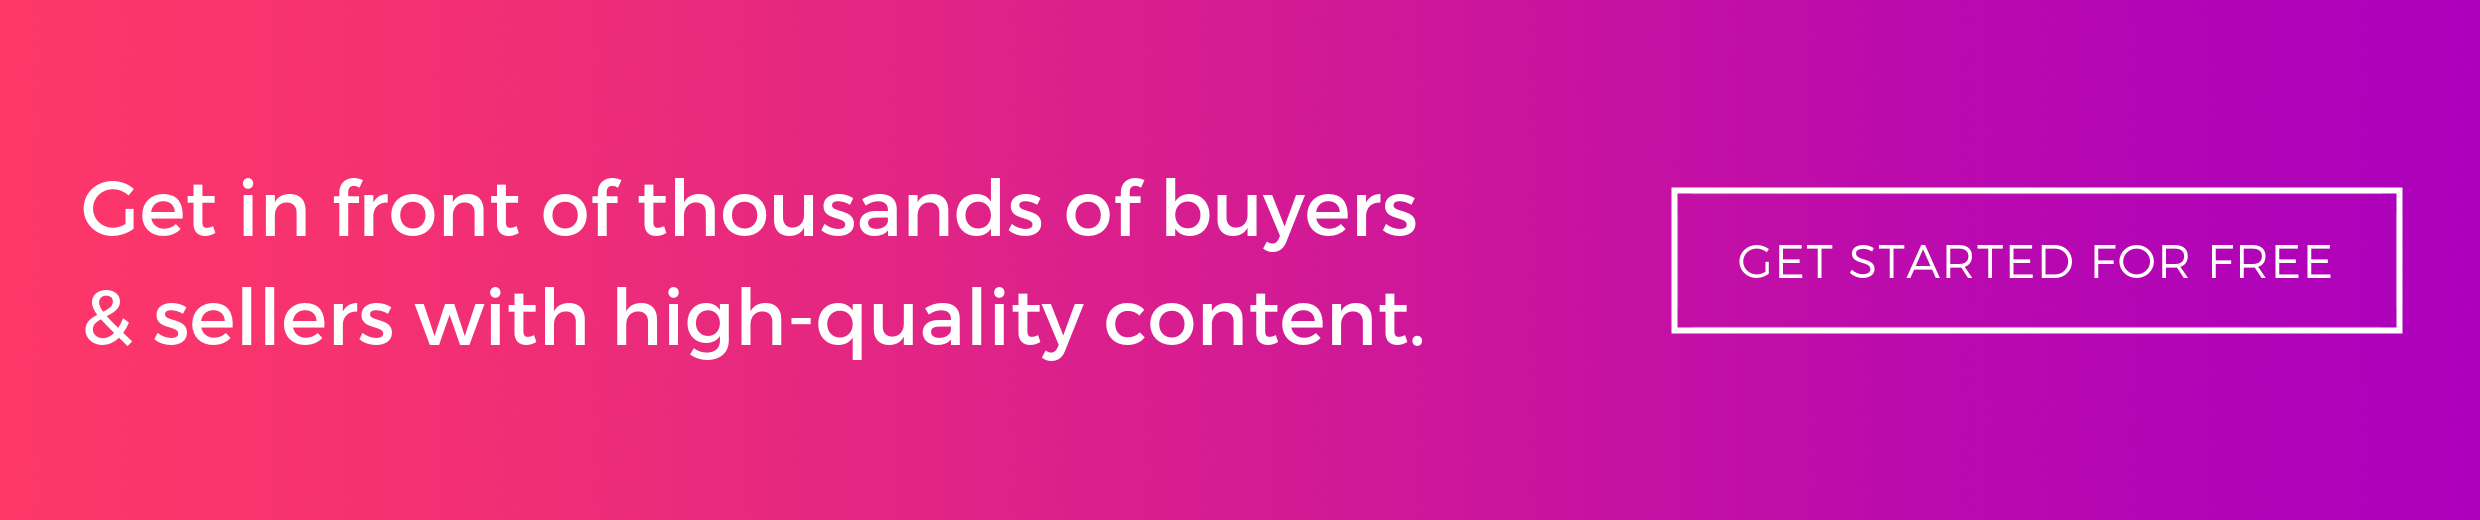 Get in front of thousands of buyers and sellers with high quality content